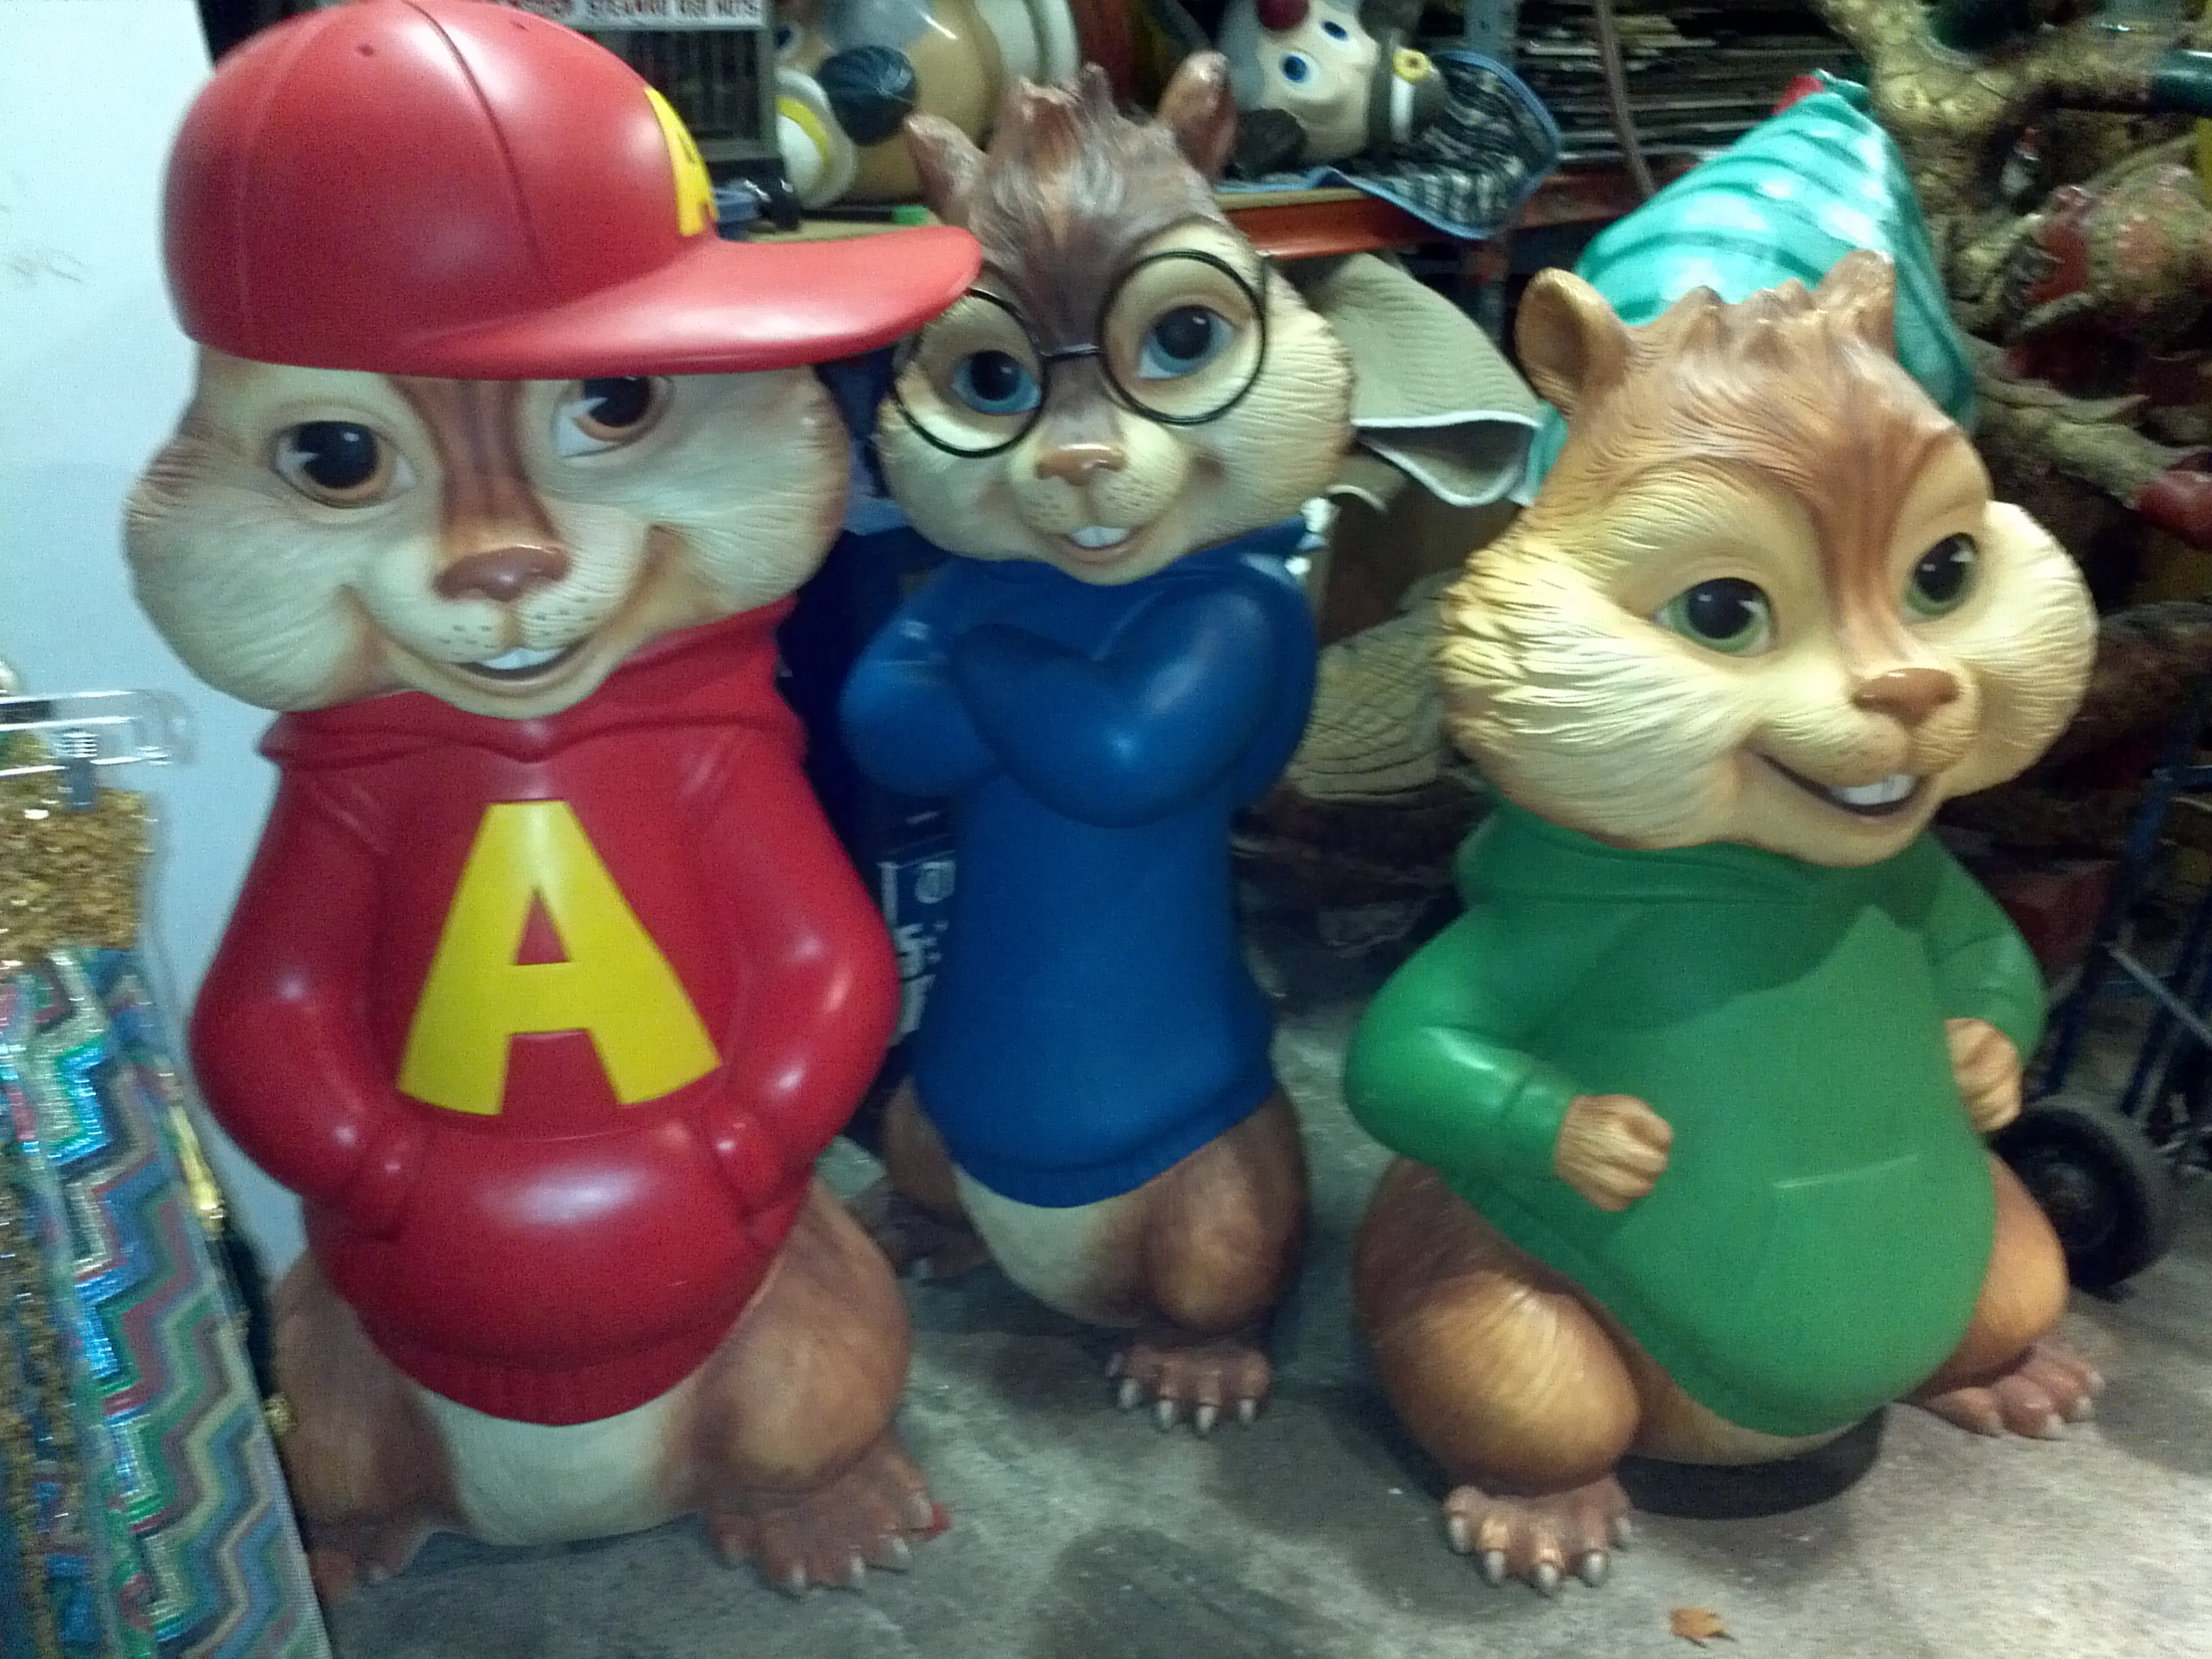 alvin and the chipmunks theater lobby display « obnoxious antiques